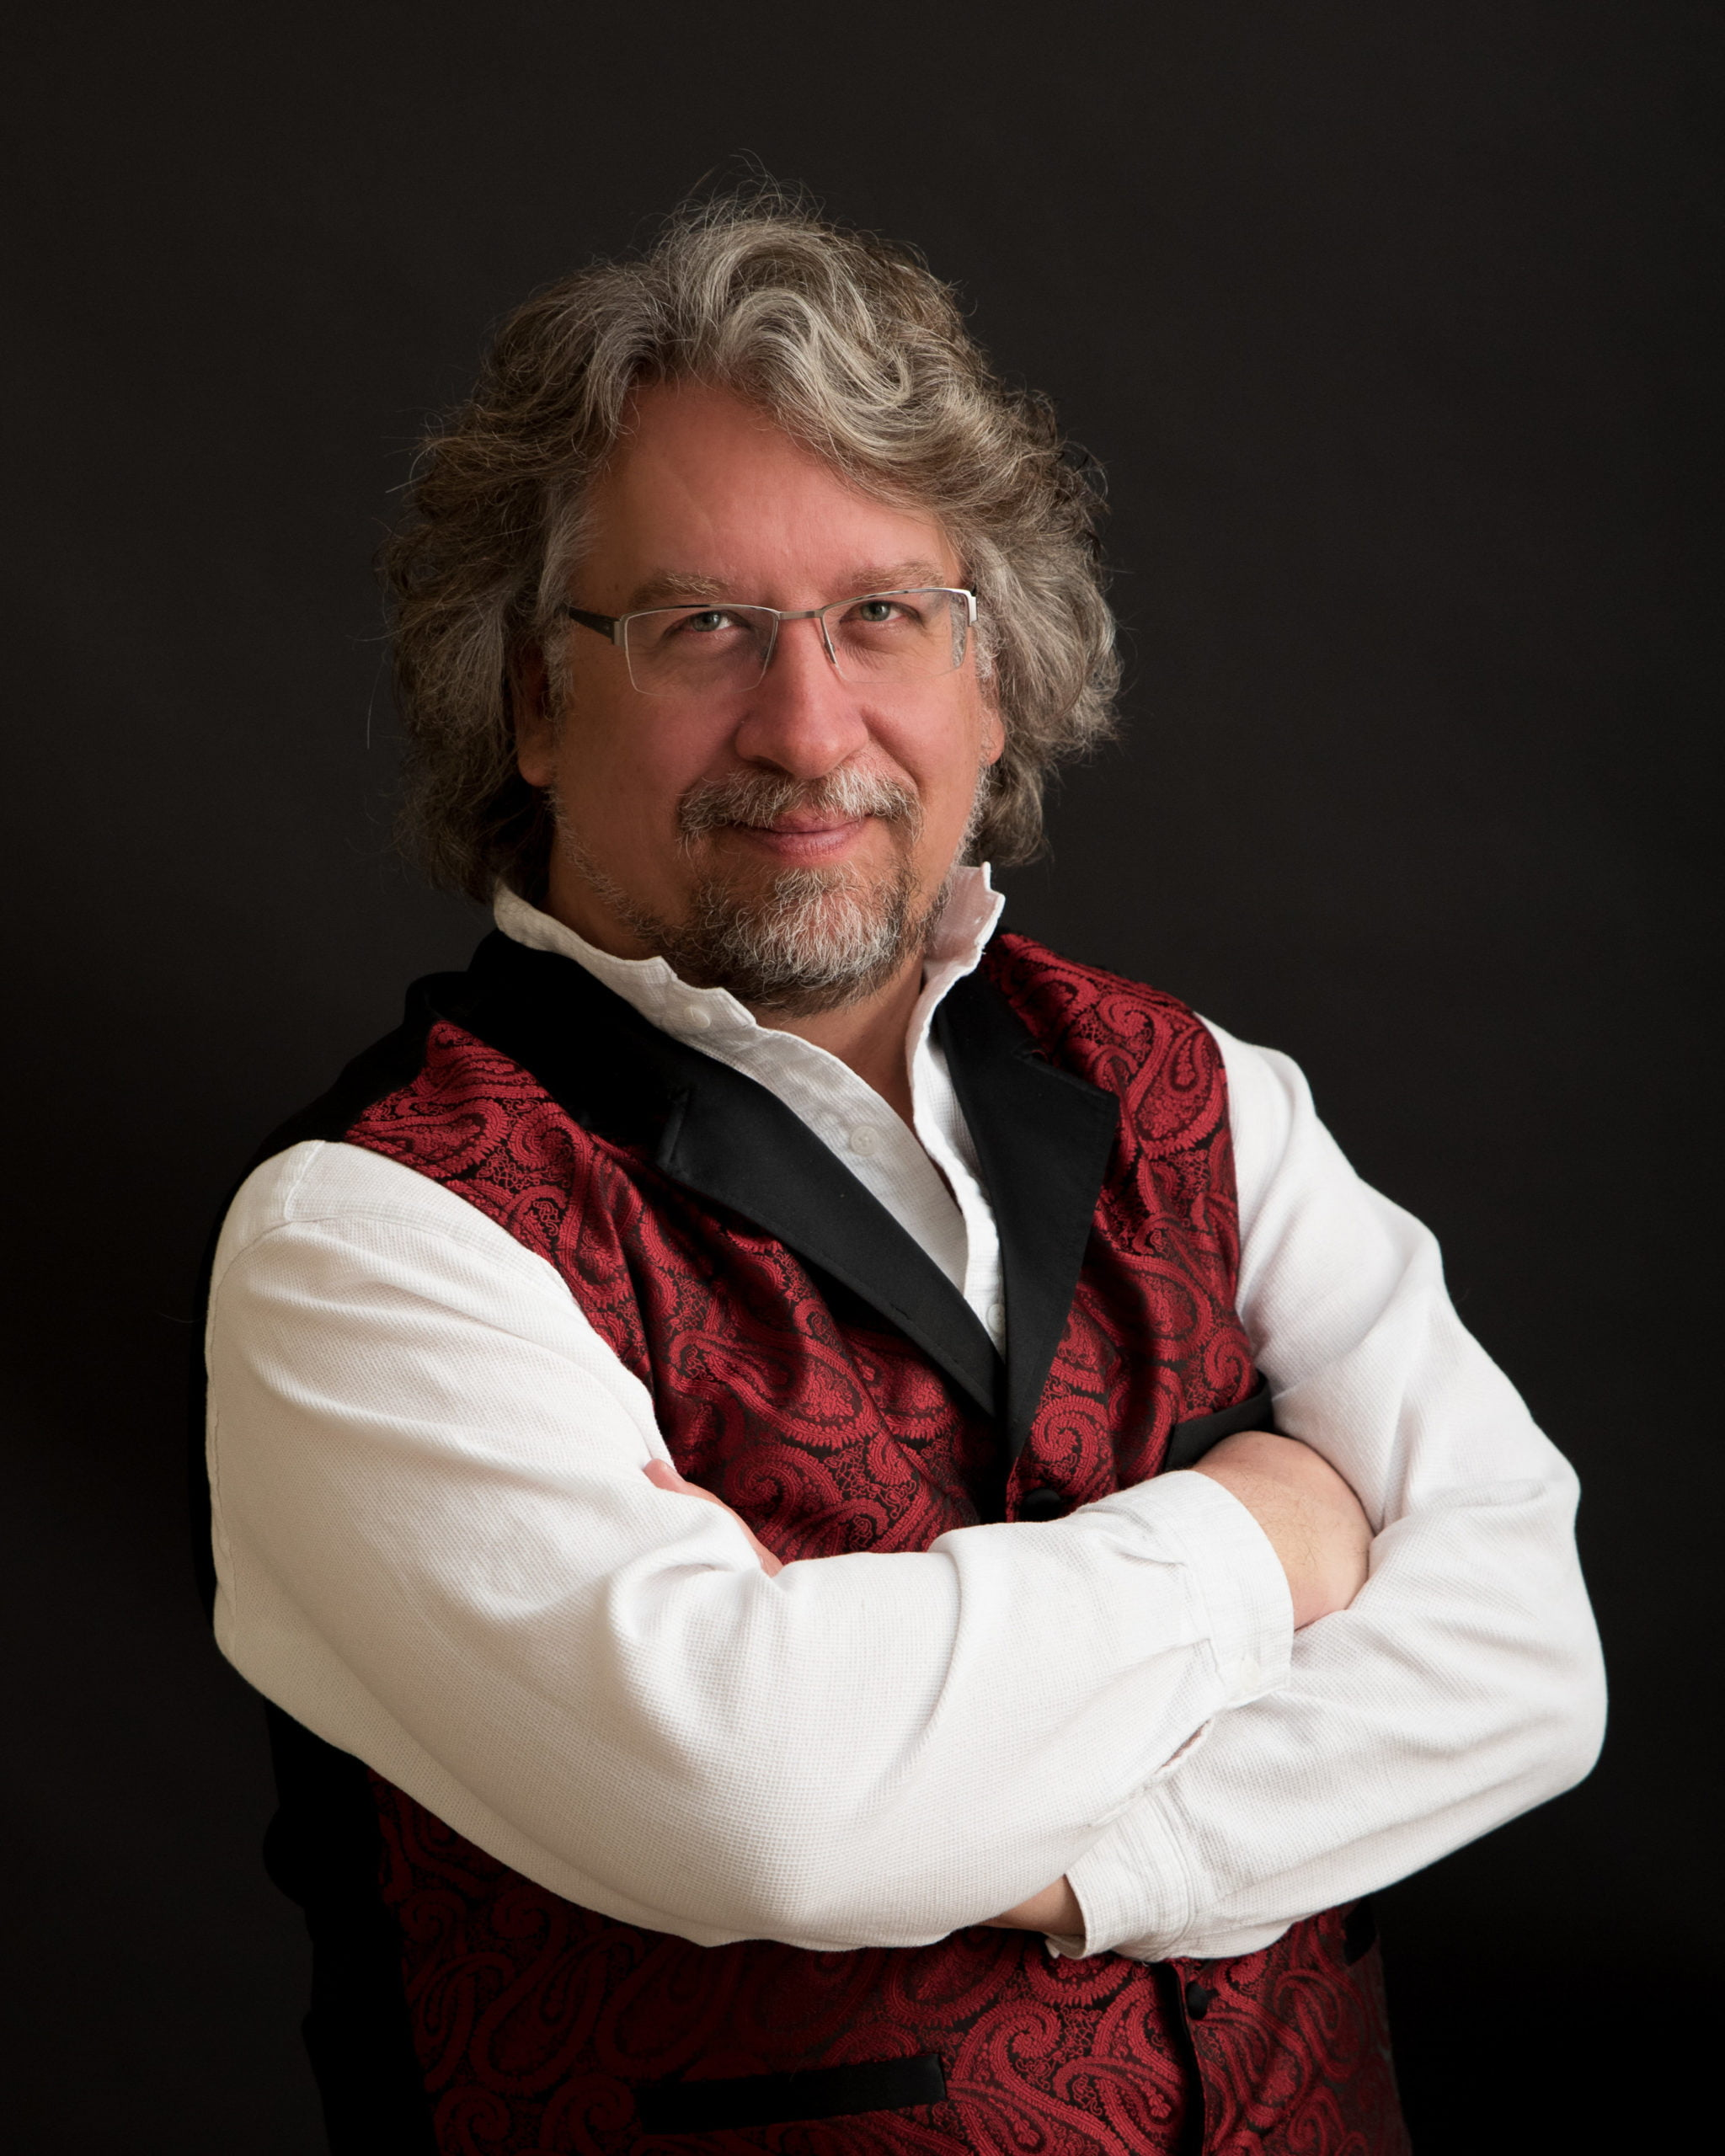 Author and Speaker Tim Ritter Now Taking His Acclaimed Presentations and Booksigning Tour on the Road